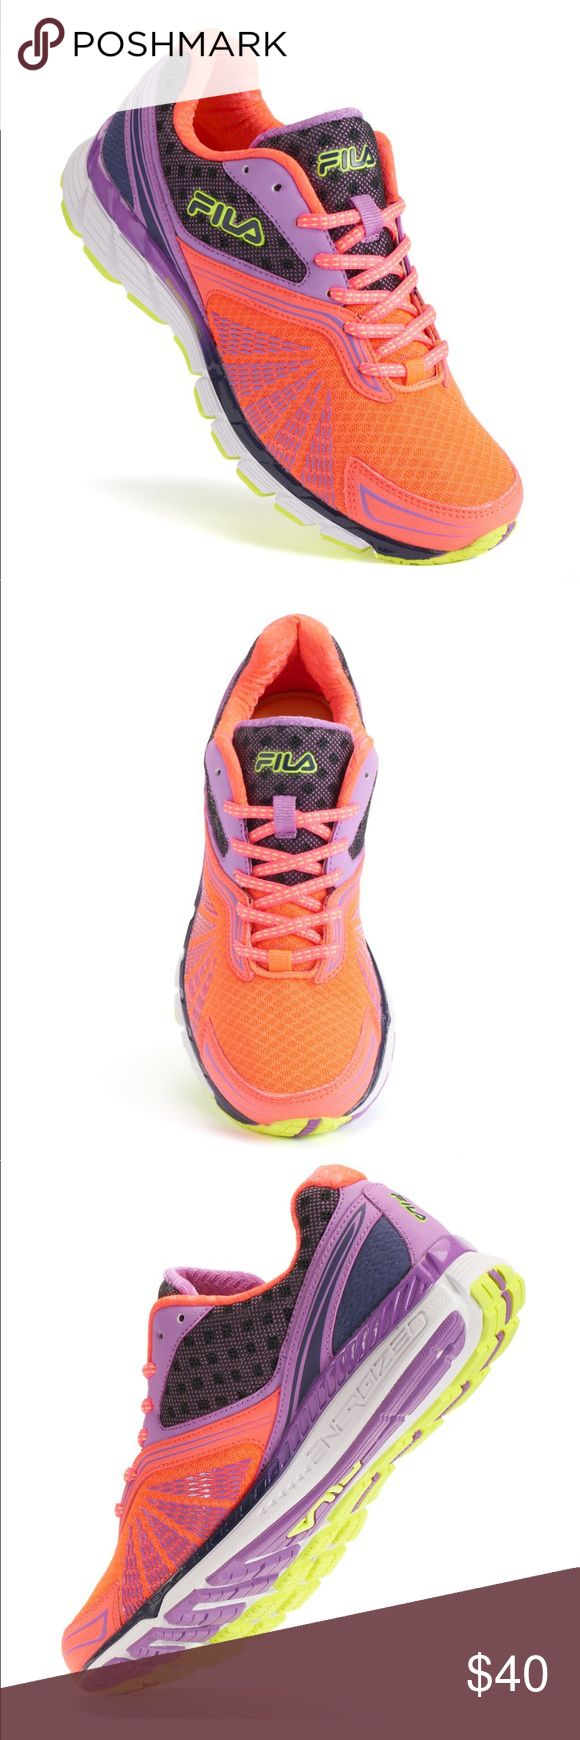 Fila Women's Running Shoes Lightweight and comfortable, these women's FILA running shoes let you go the extra mile.  *leather, synthetic, mesh upper, EVA midsole, rubber outsole, lace up closure, memory foam footbed. Fila Shoes Sneakers